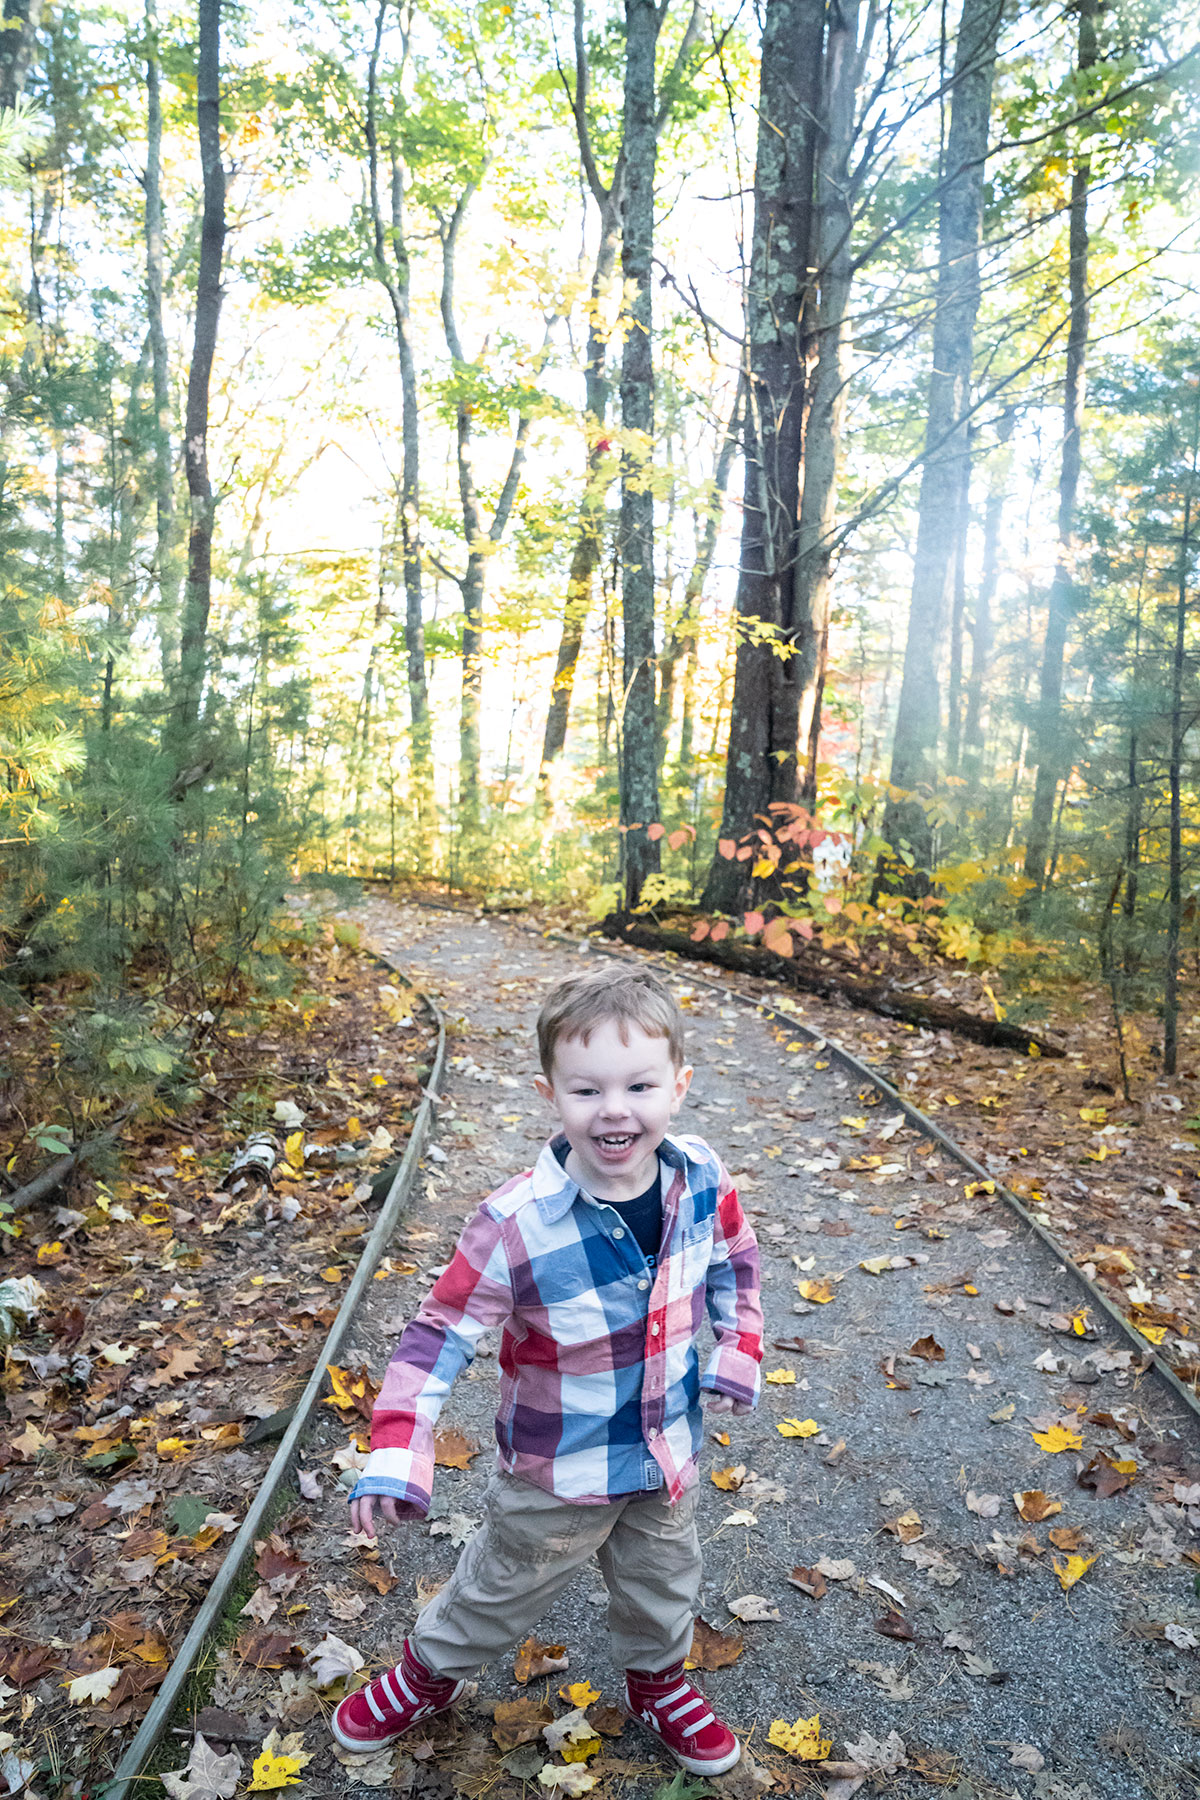 Walking-Rachel-Carson-Refuge-Trail-in-Fall